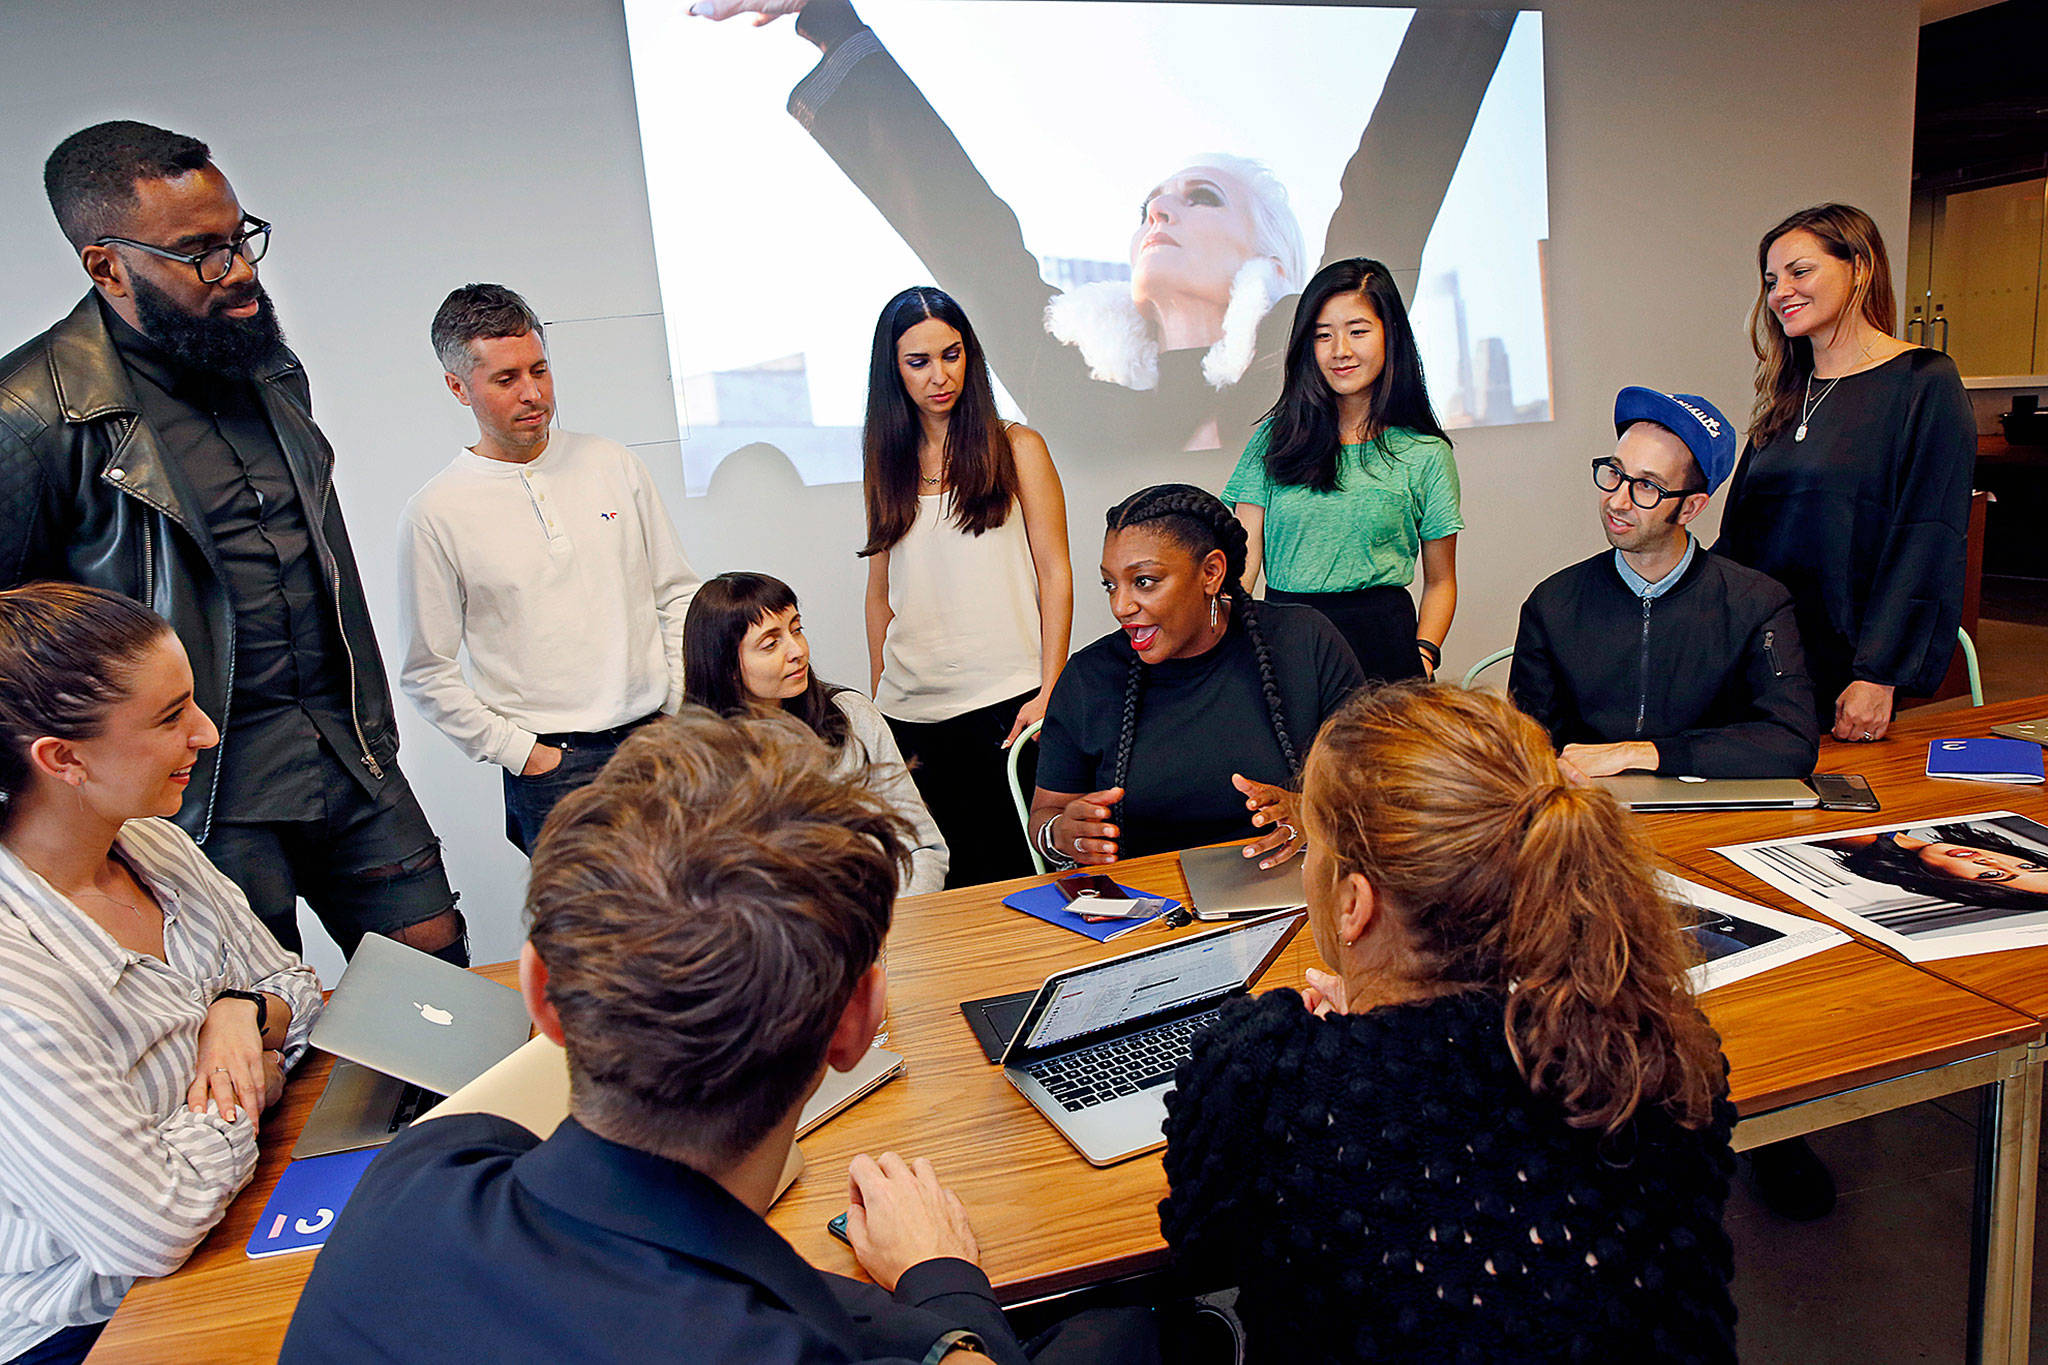 Members of the Droga5 team behind the recent CoverGirl campaign talk about that campaign during a meeting at the advertising agency's headquarters in New York on Tuesday. (AP Photo/Kathy Willens)